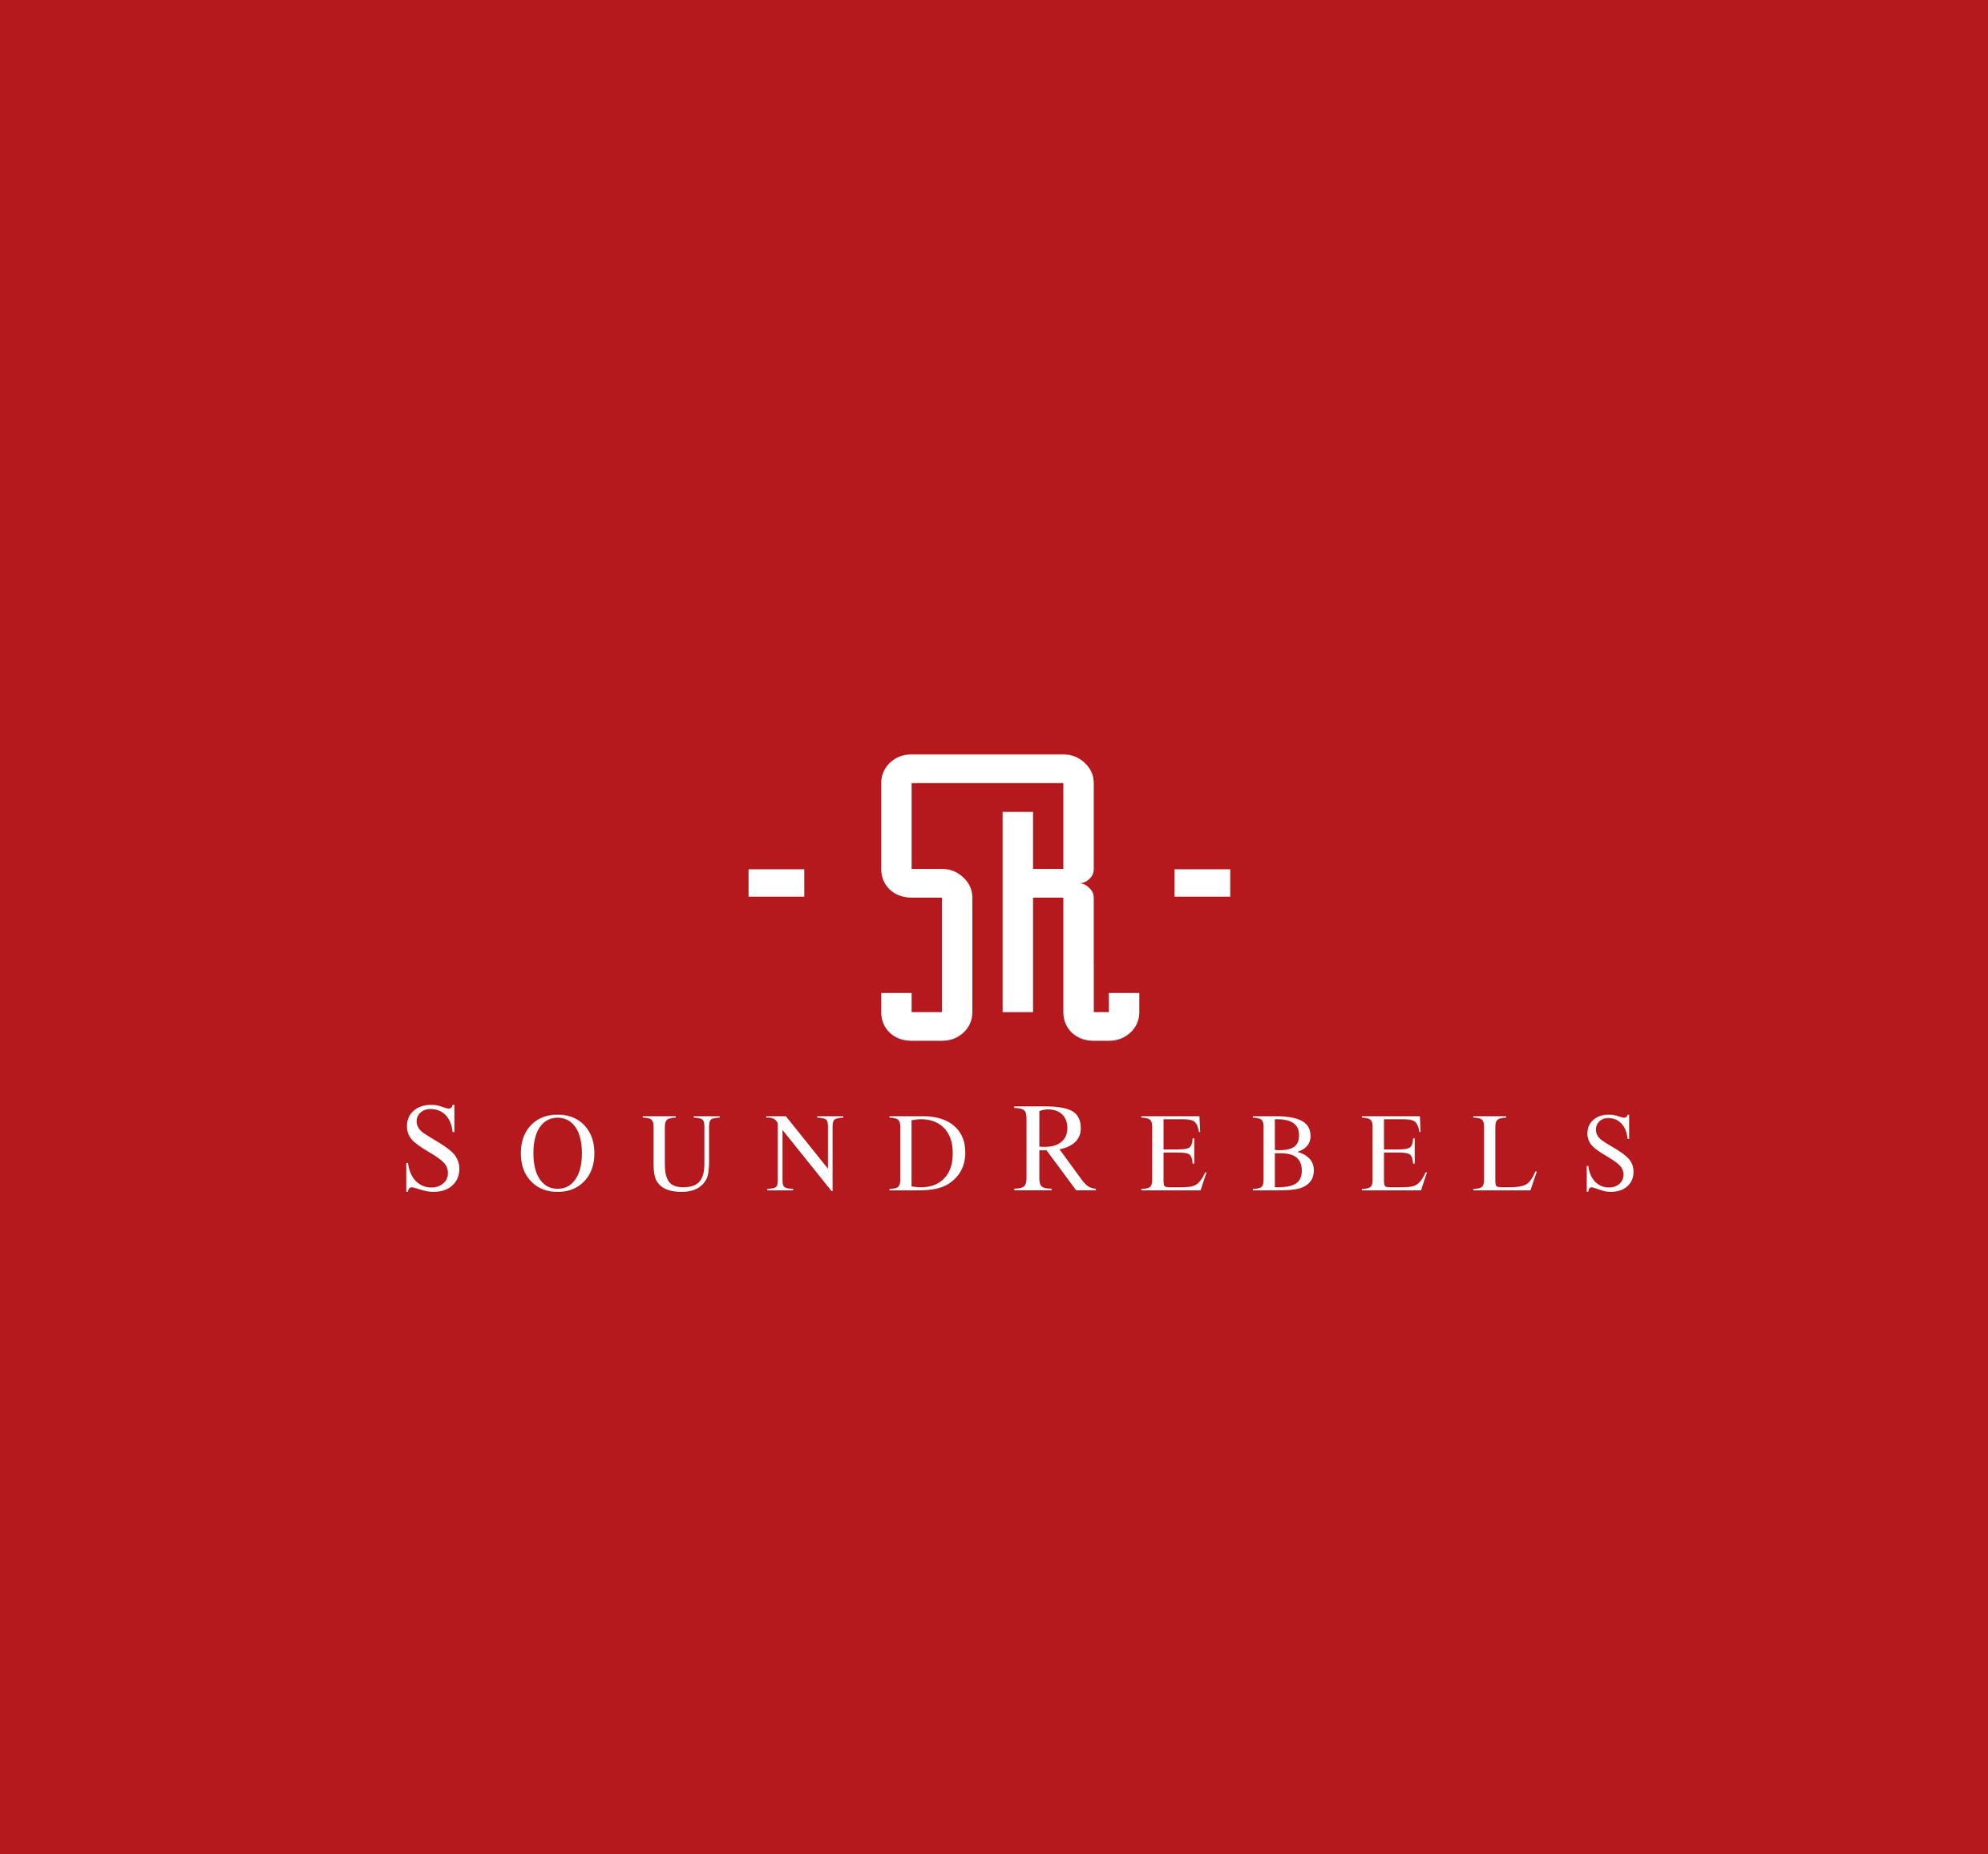 SoundRebels JPG 2